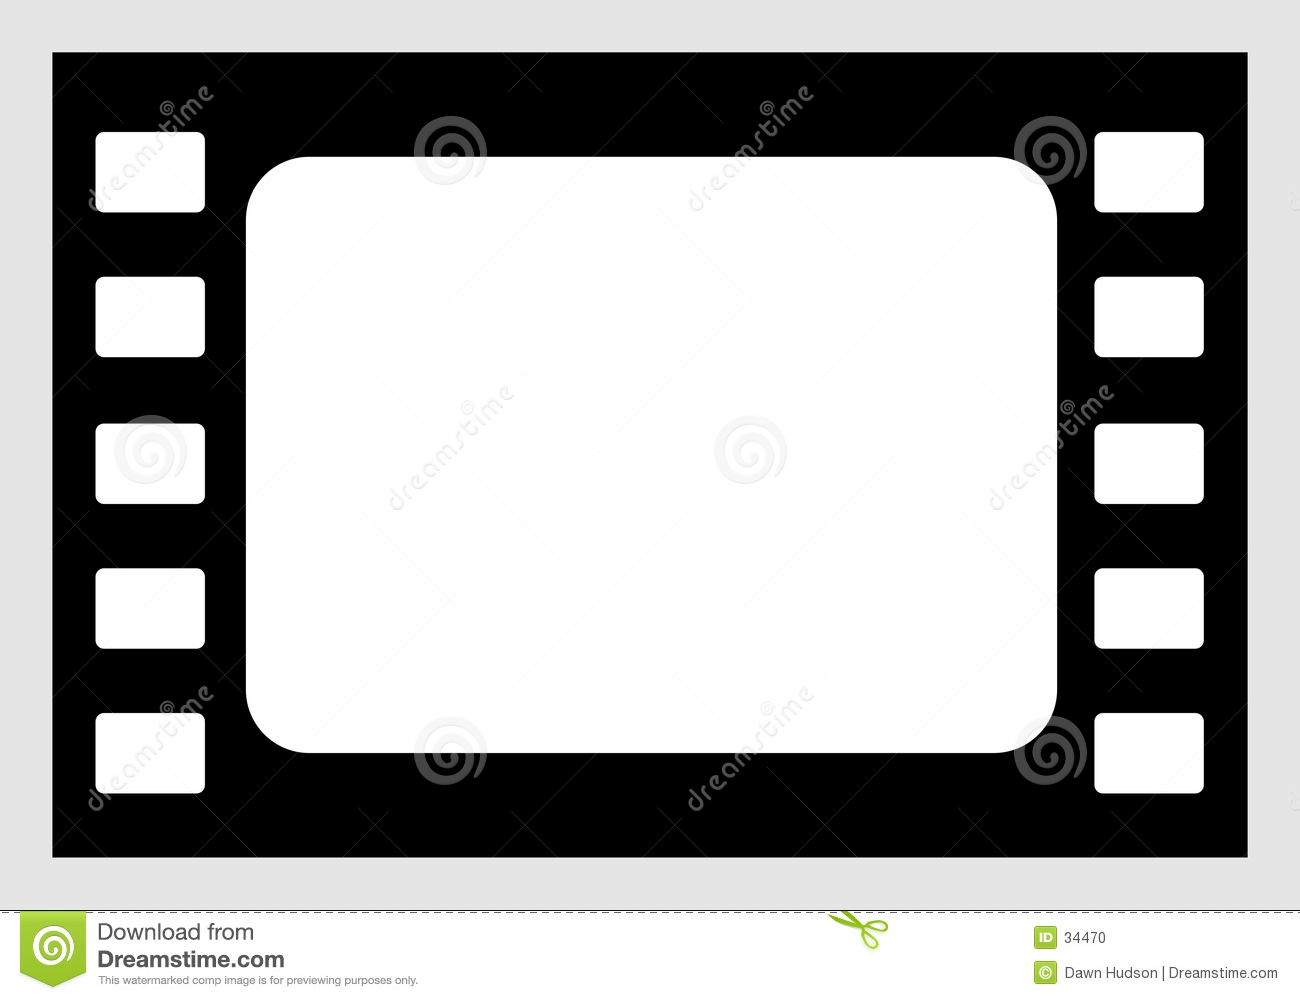 Download Film Icon stock vector. Illustration of border, digital - 34470